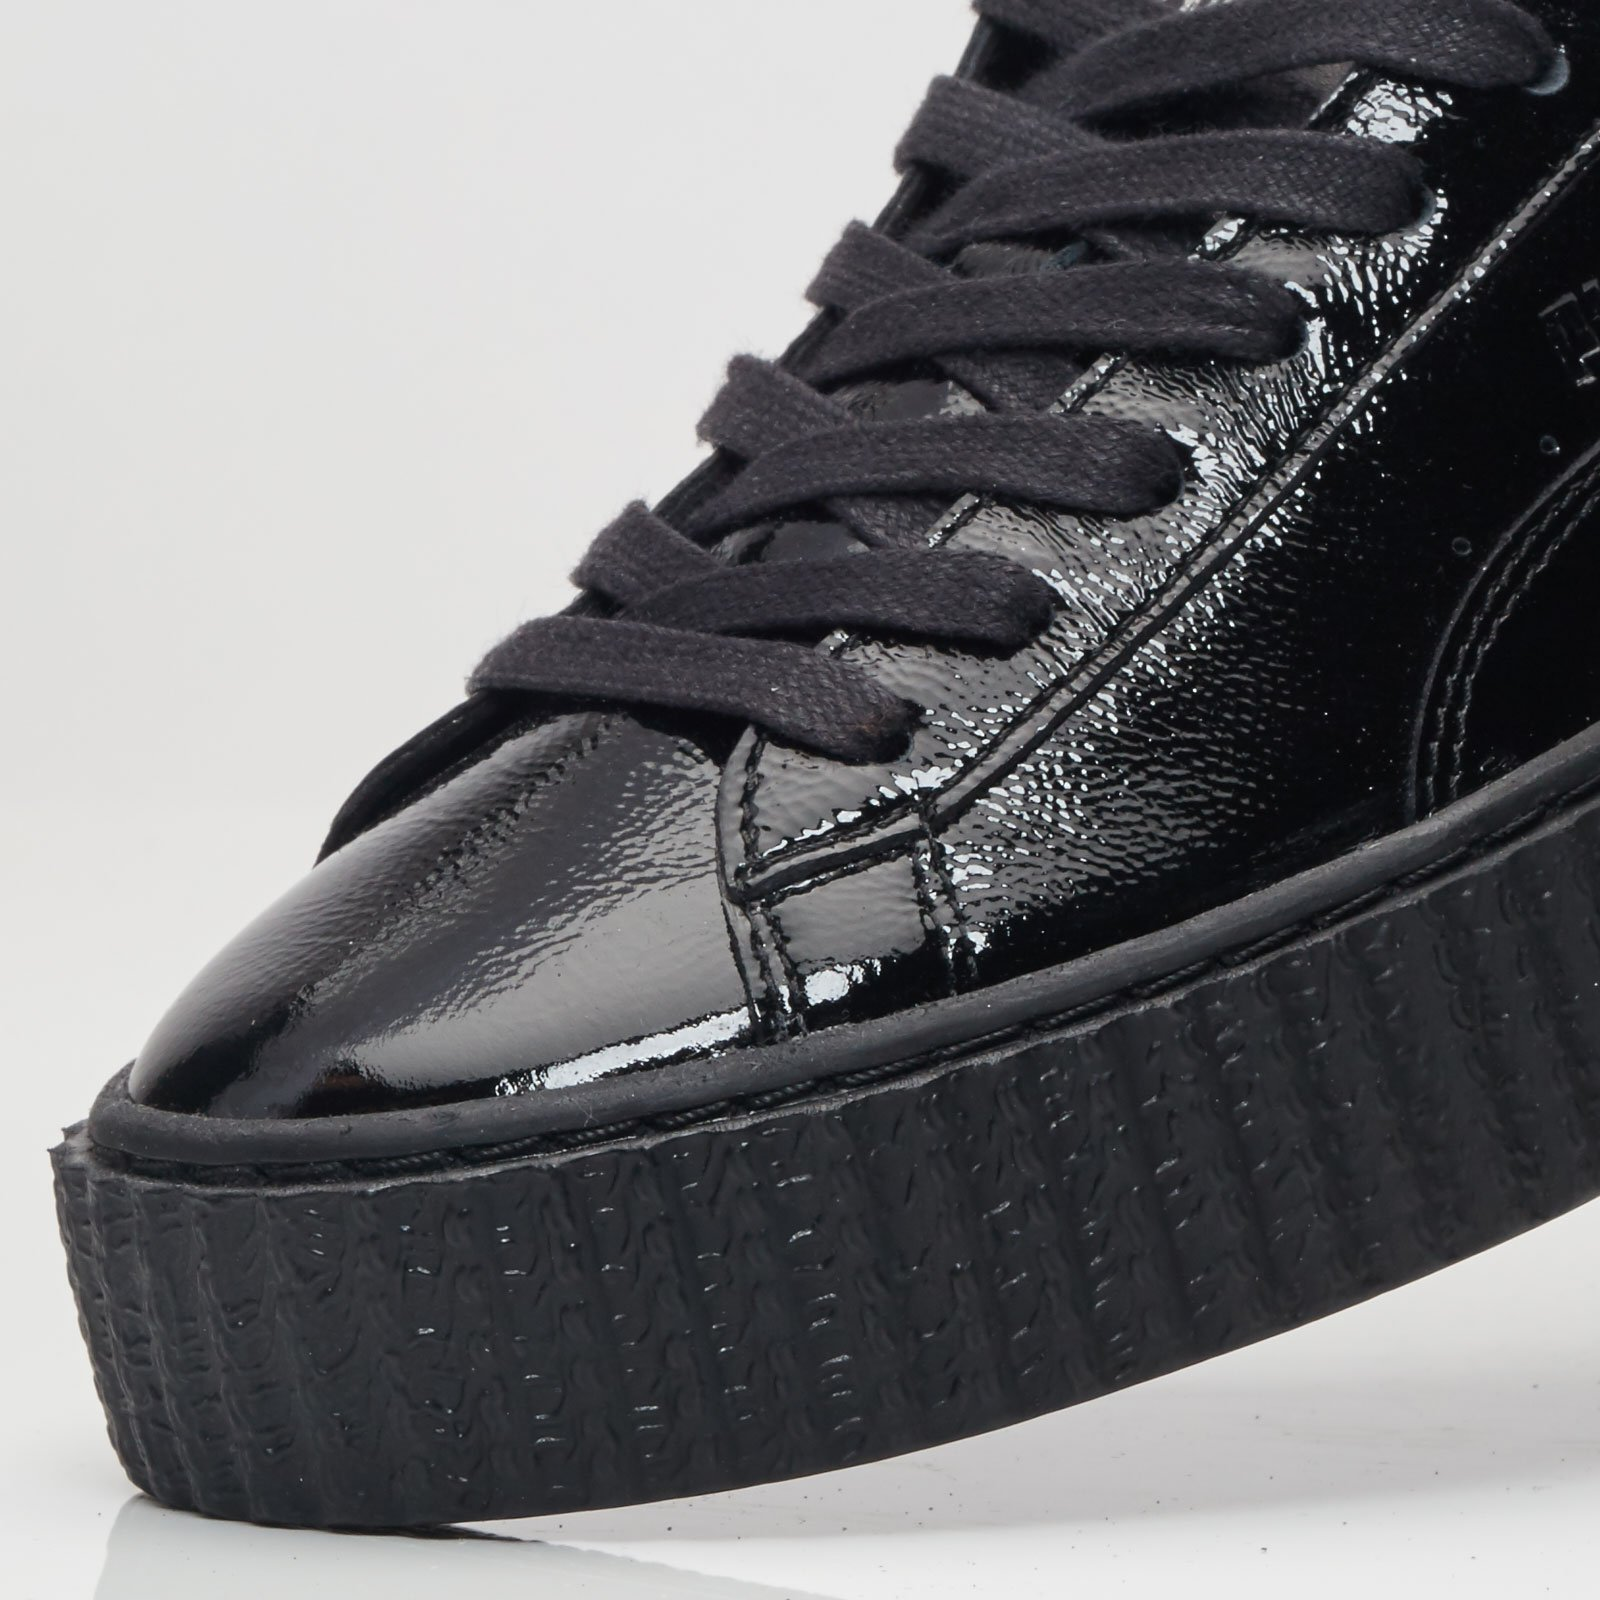 hot sale online d0a10 0b6a7 Puma Creeper Cracked Leather - 364465-01 - Sneakersnstuff ...